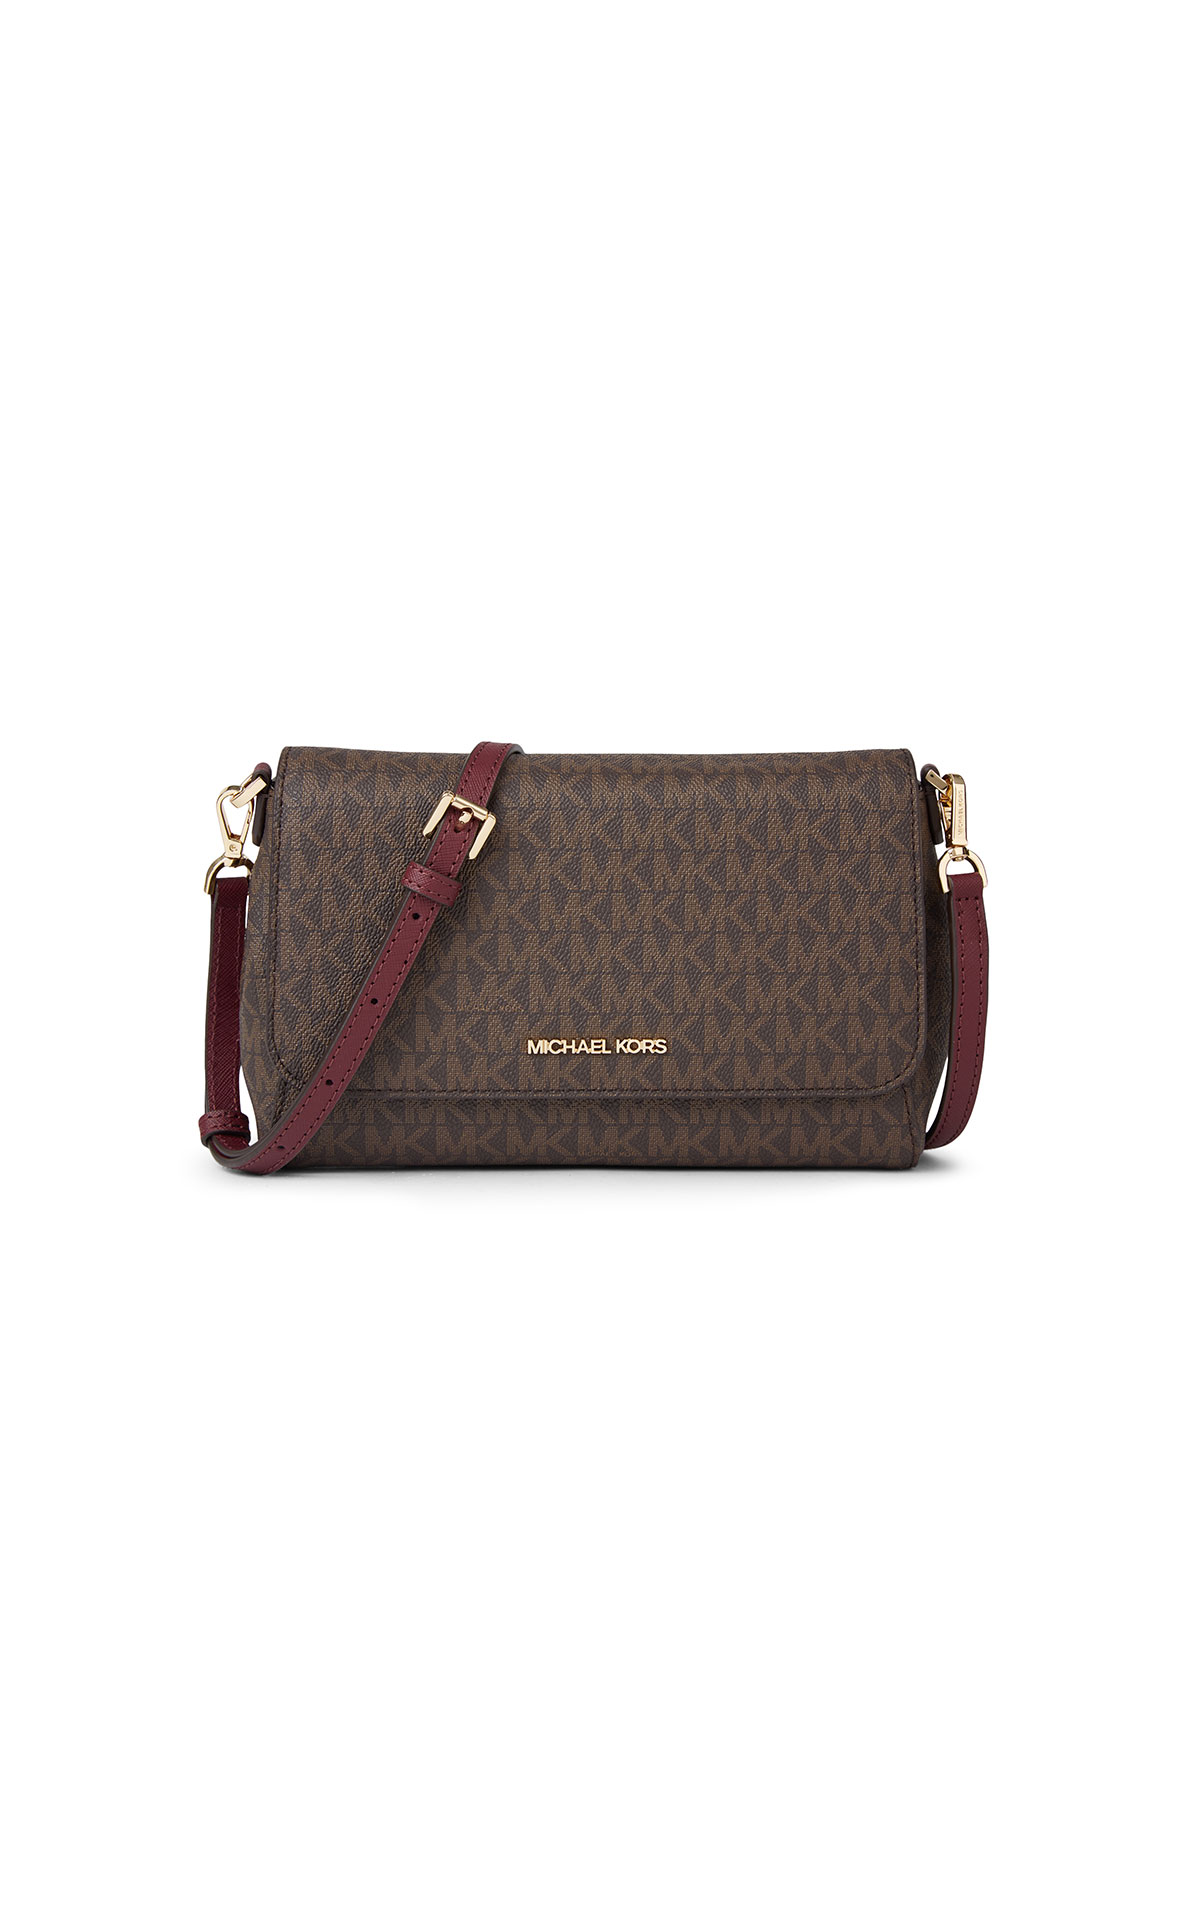 Michael Kors Jet Set MD Conv Pouchette at the Bicester Village Shopping Collection